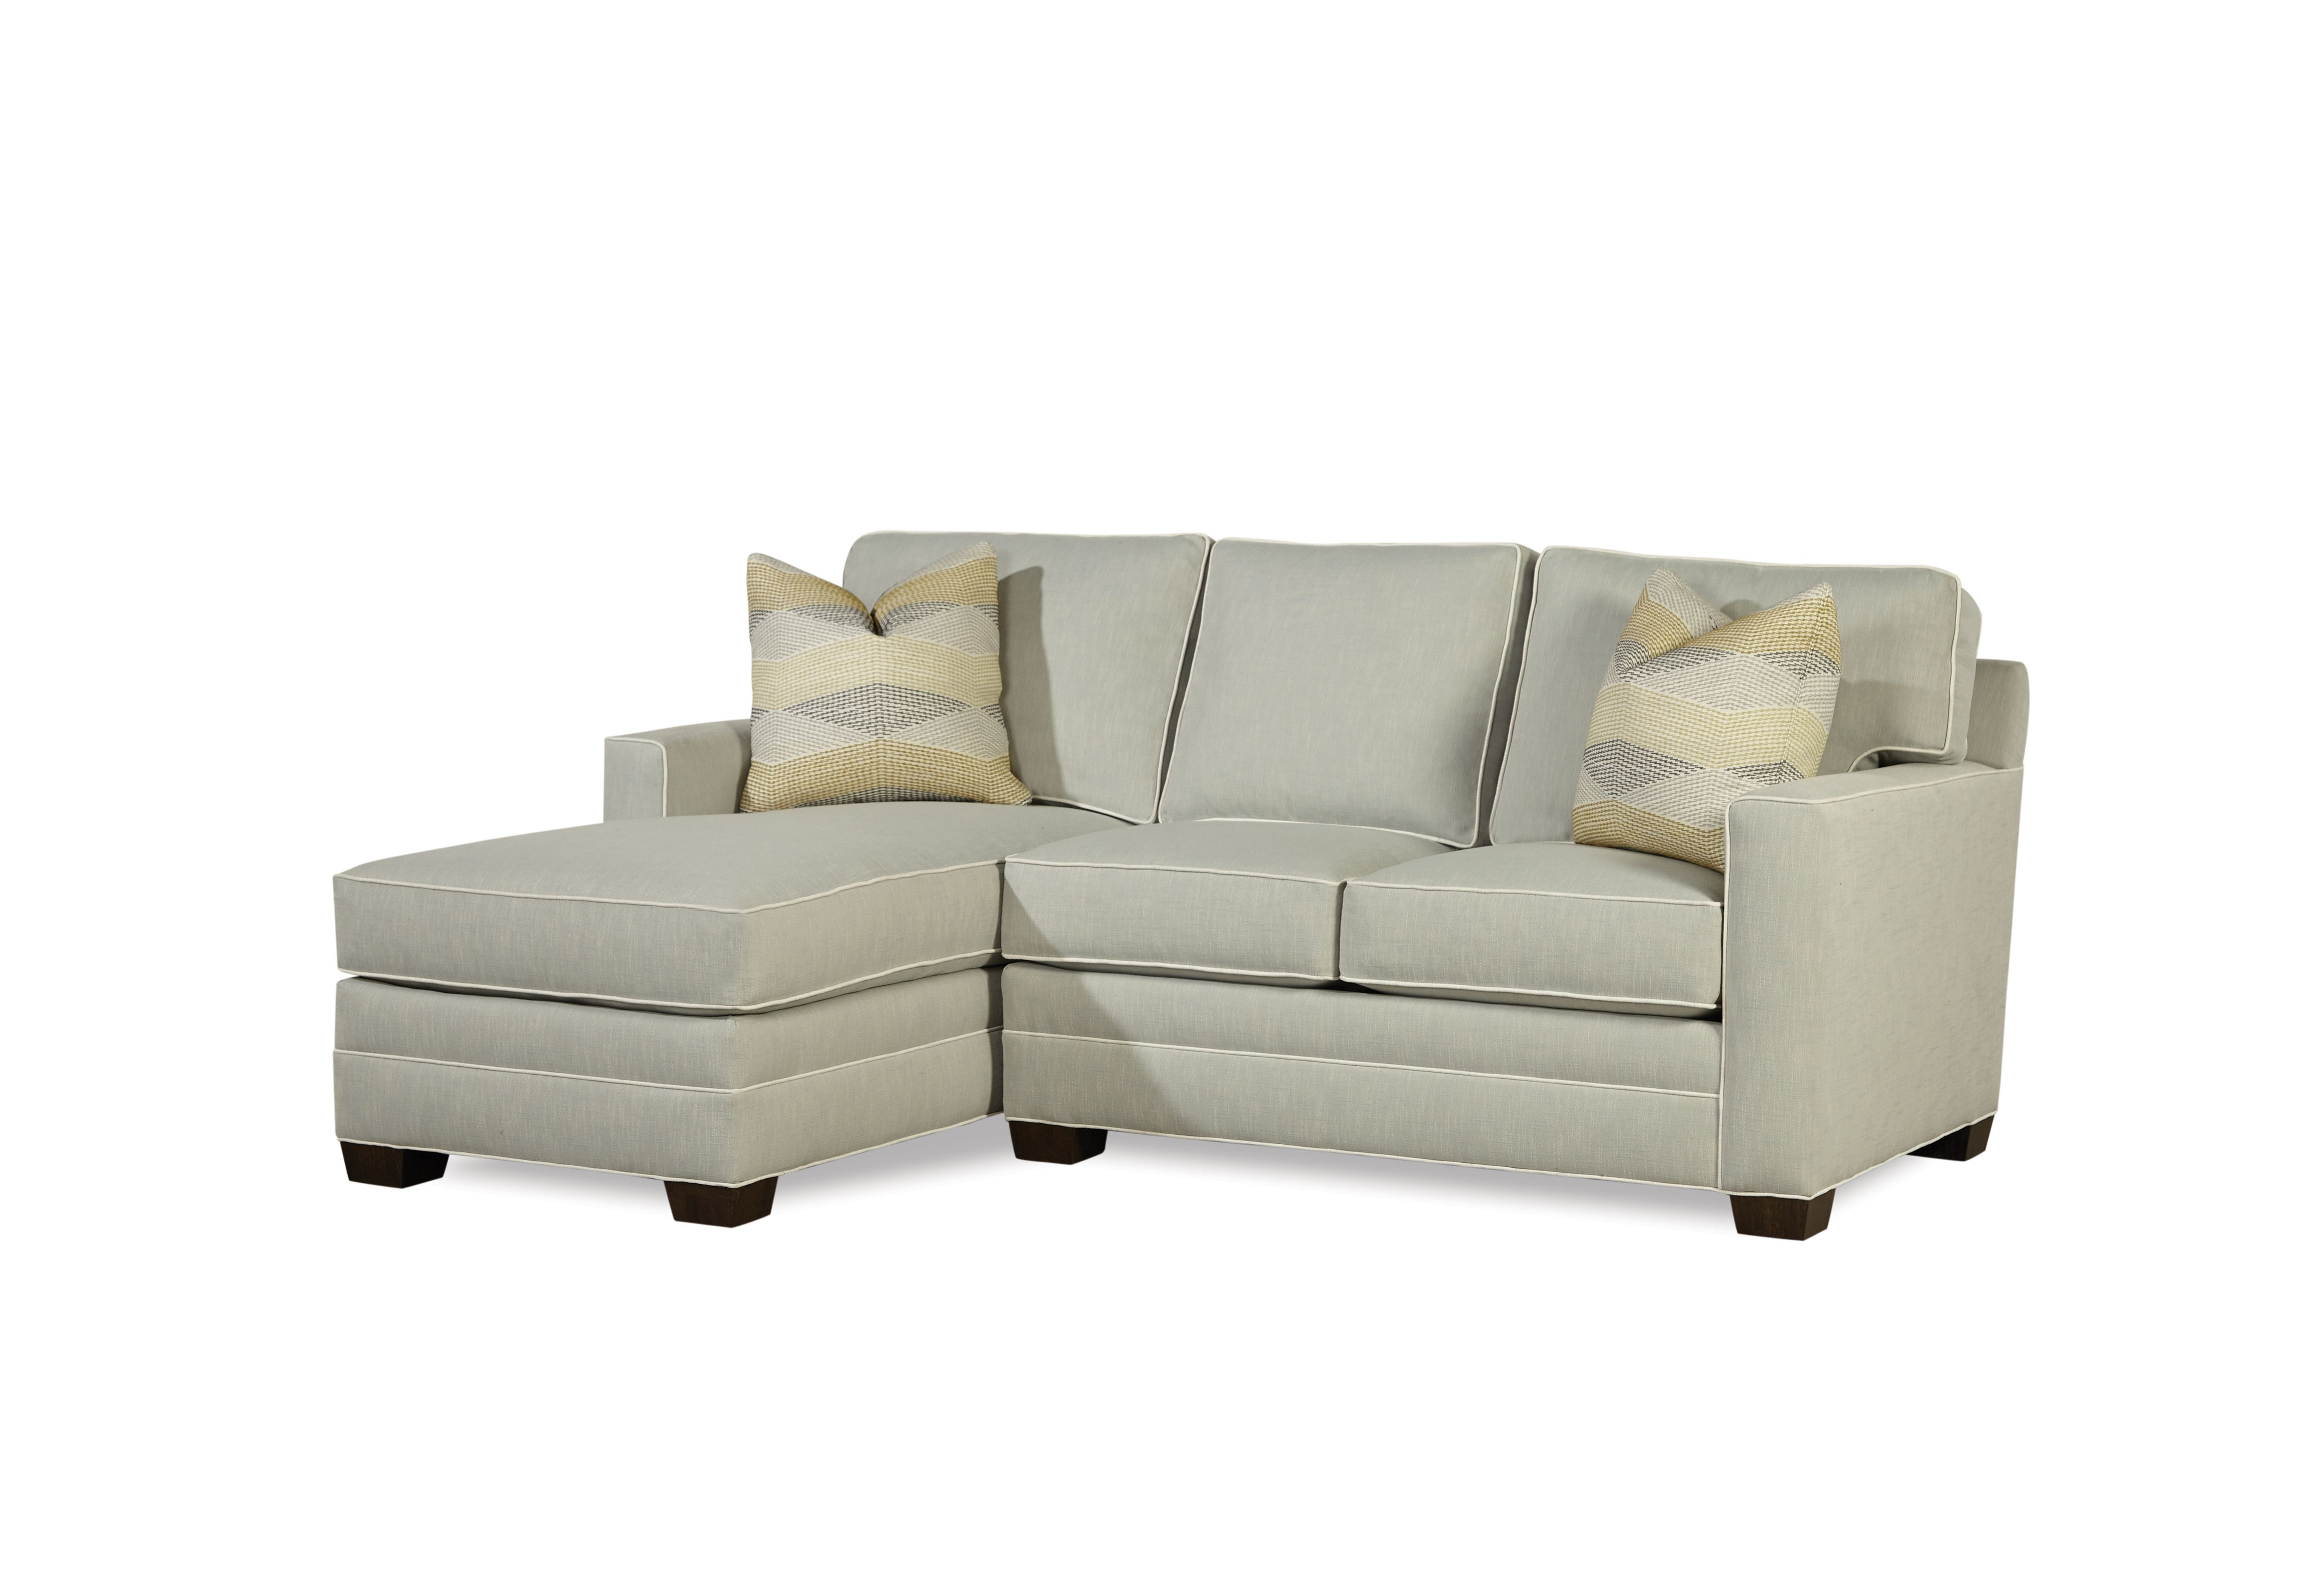 Huntington House 2053 Sectional Shown In Crypton Home Fabric in Sectional Sofas at Birmingham Al (Image 4 of 15)